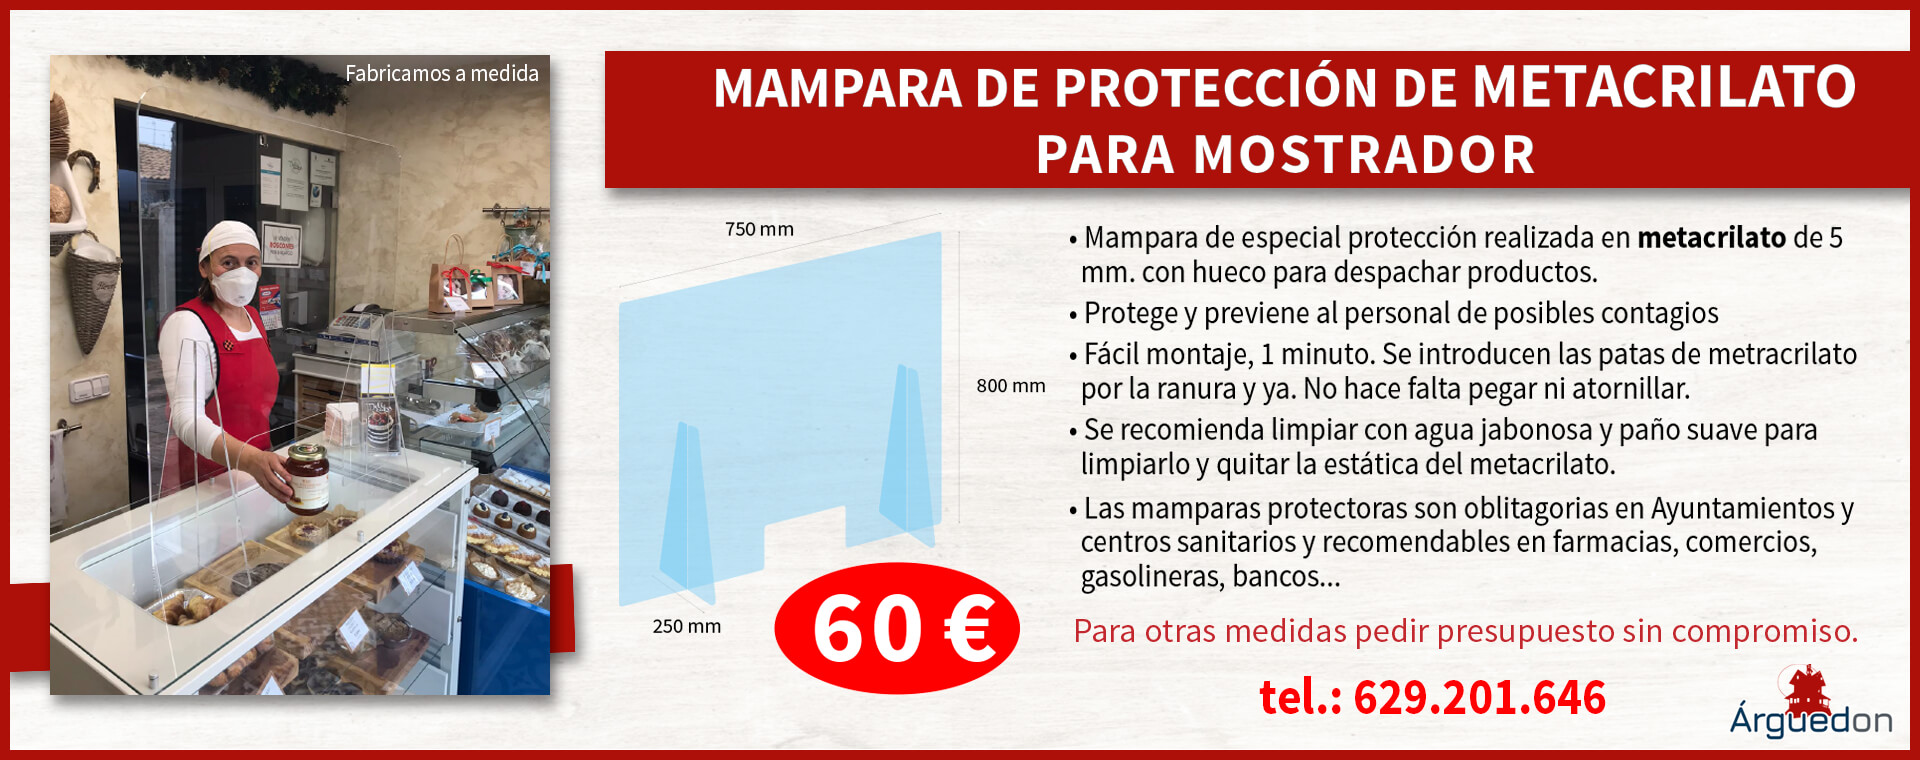 Mampara de Proteccion